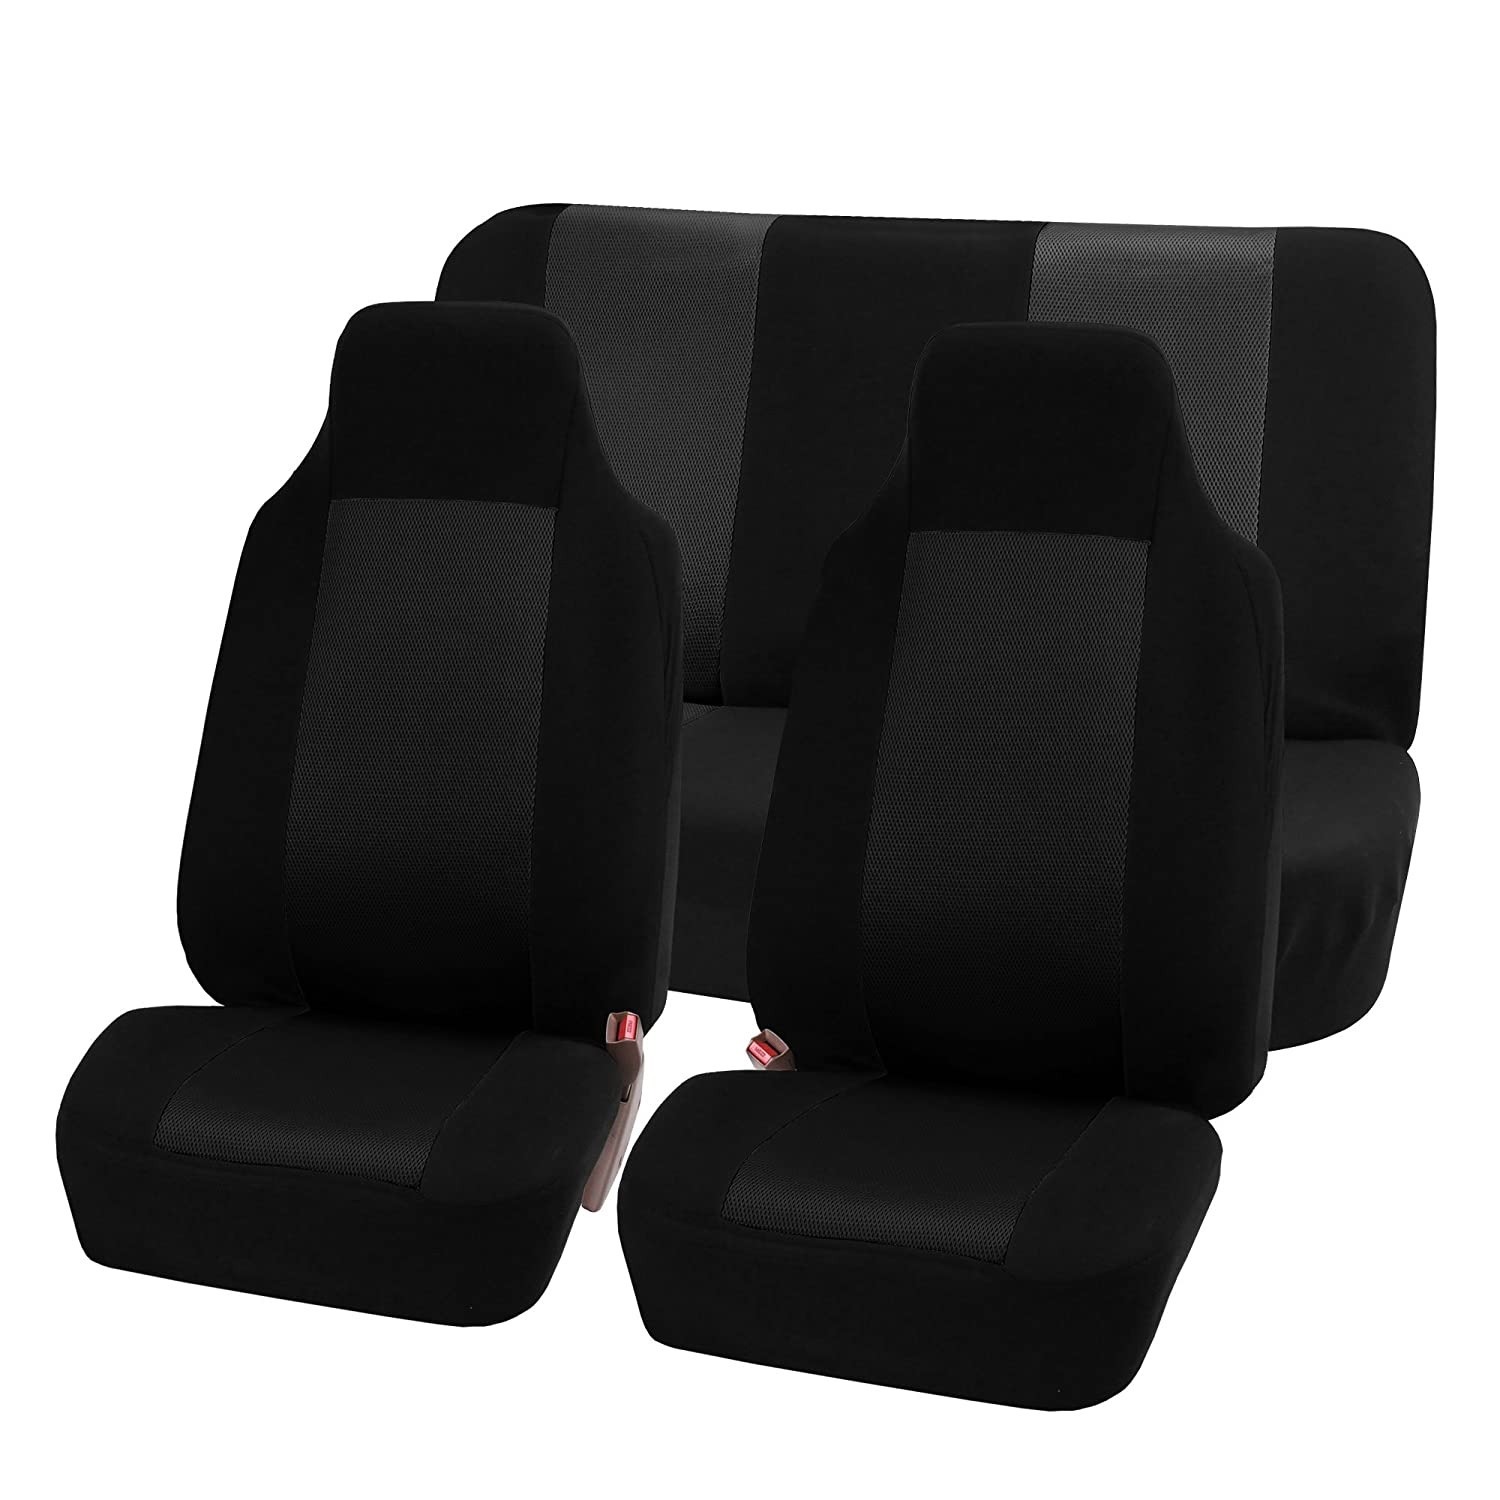 FH GROUP FH-FB102112 Classic Cloth Car Seat Covers Universal Full Set / Complete Seat Black Color High Back Bucket - Fit Most Car, Truck, Suv, or Van?